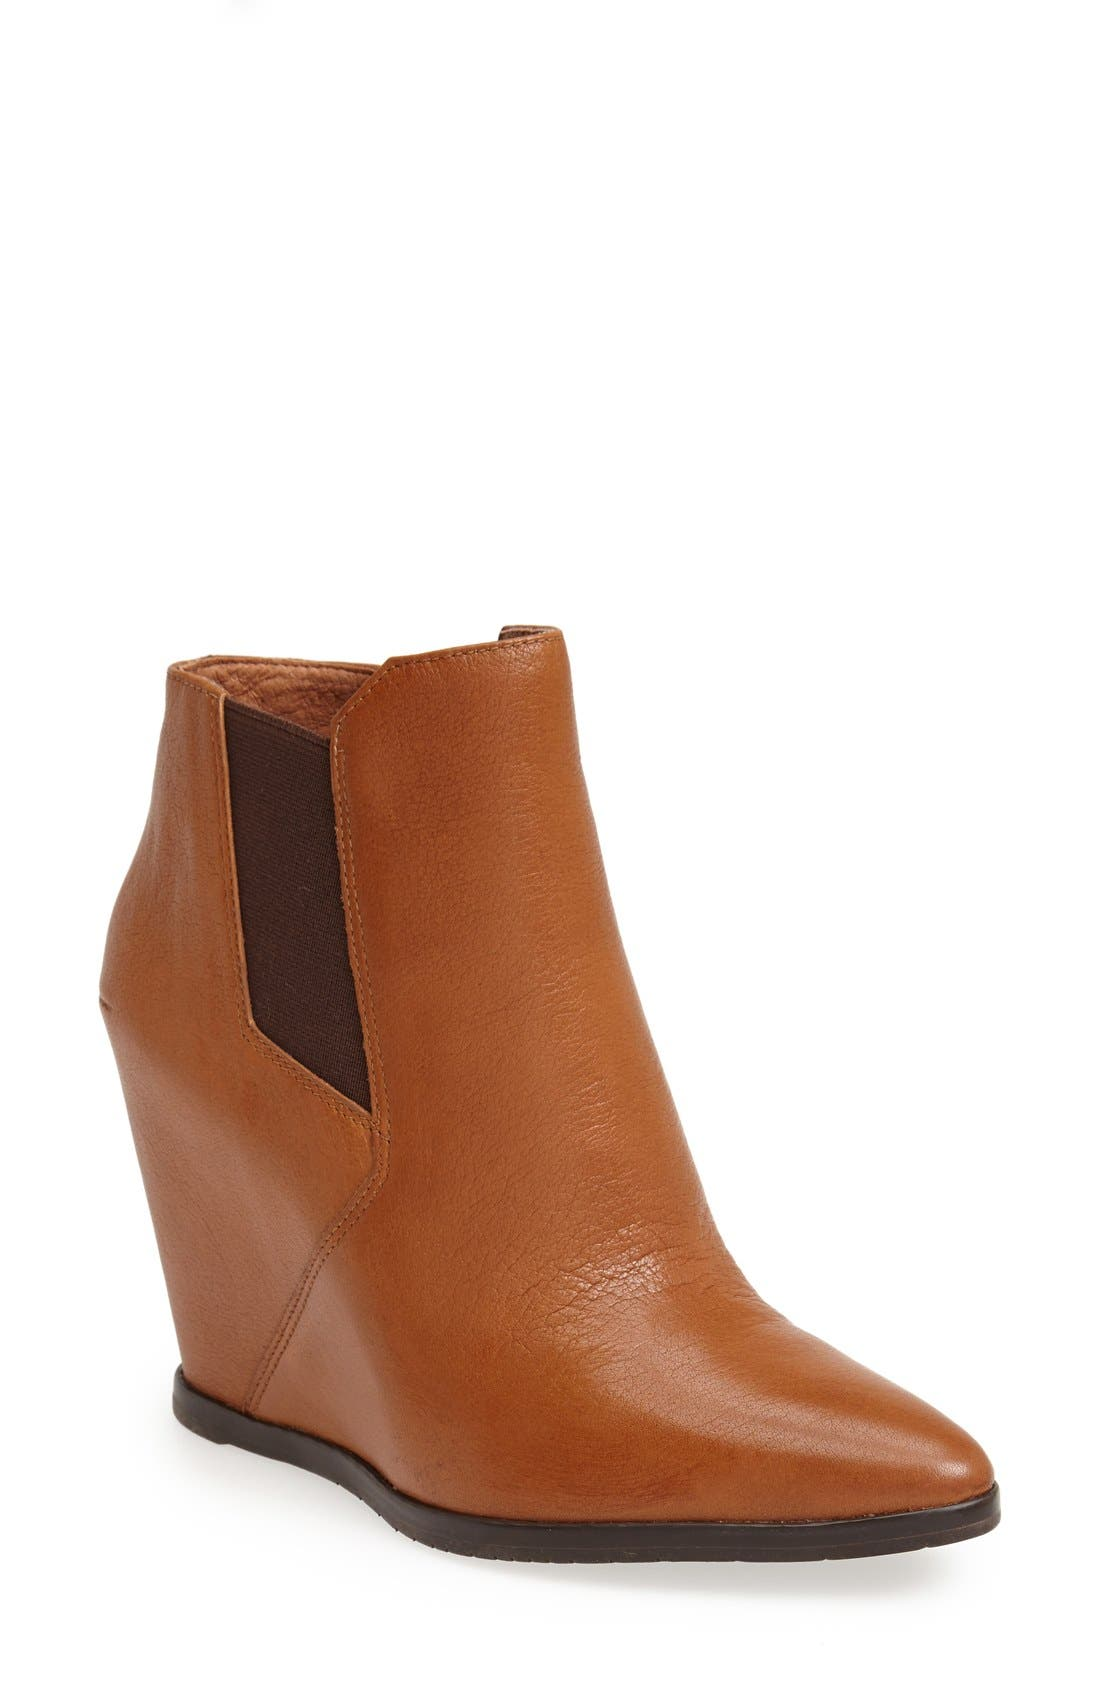 Main Image - Kenneth Cole New York 'Sloane' Leather Wedge Bootie (Women)